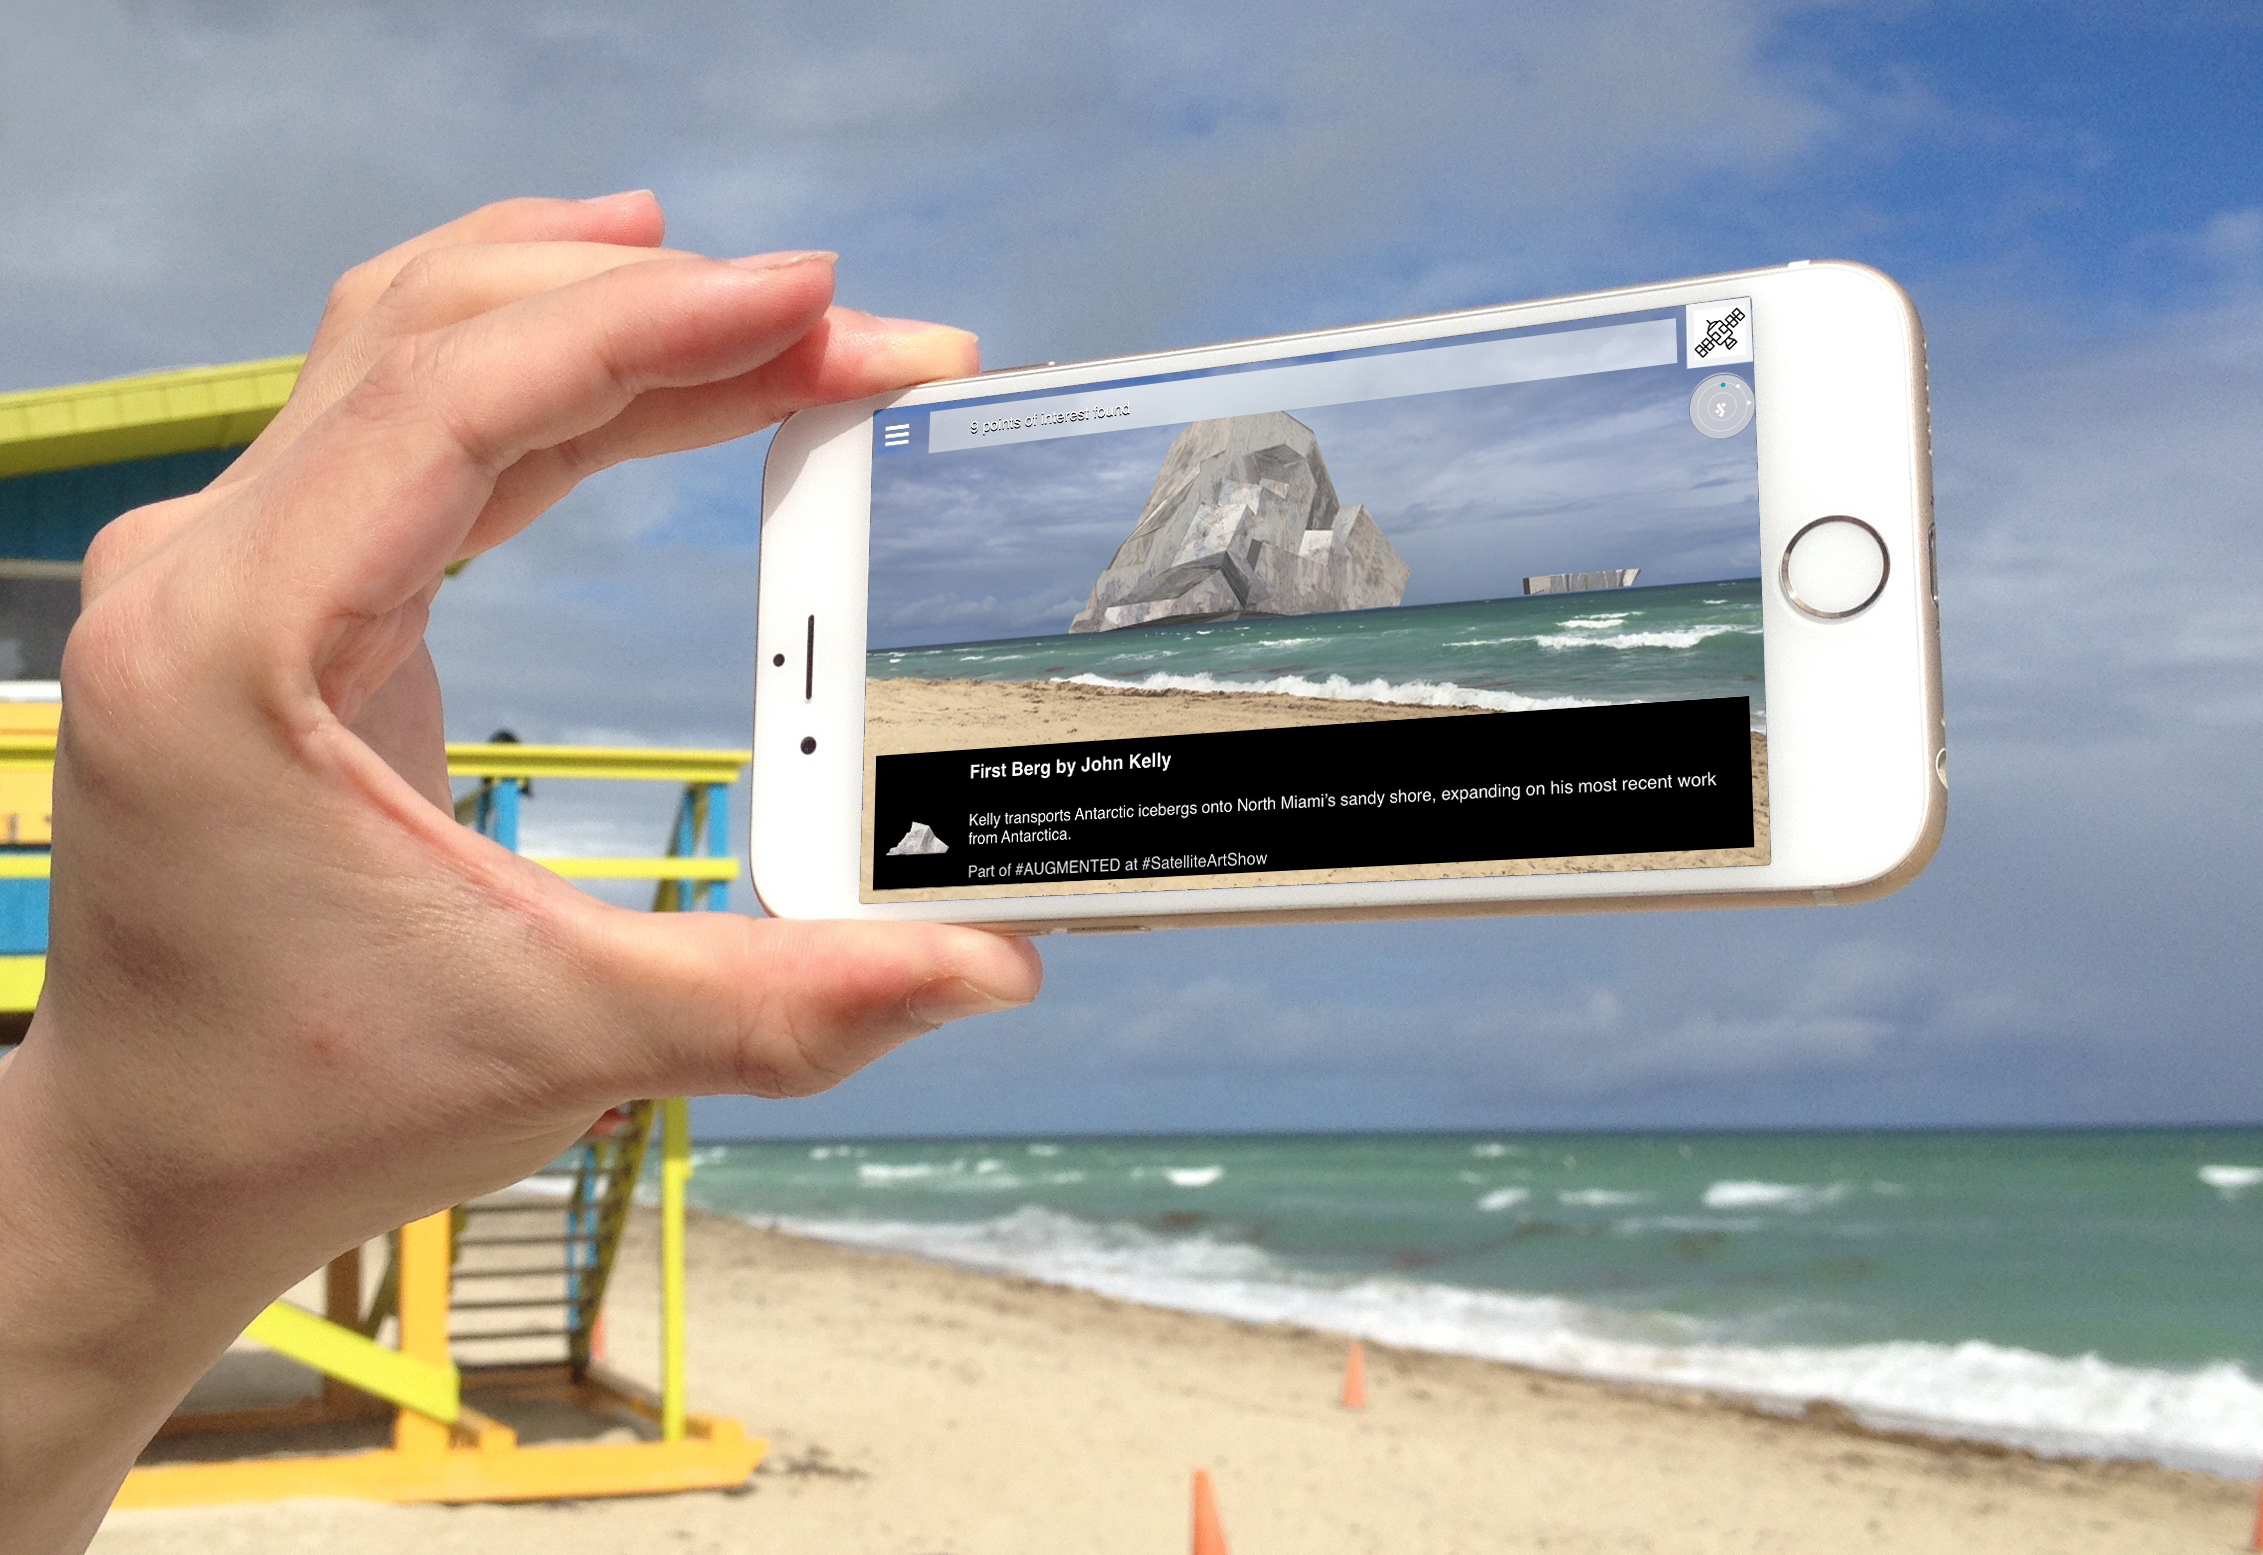 Installation view, Exhibition #AUGMENTED, 2015, showing En Plein Air In Plain Sight (partial view), 2015, by John Kelly, Miami, Florida ©Spark Art Management/SPARK+